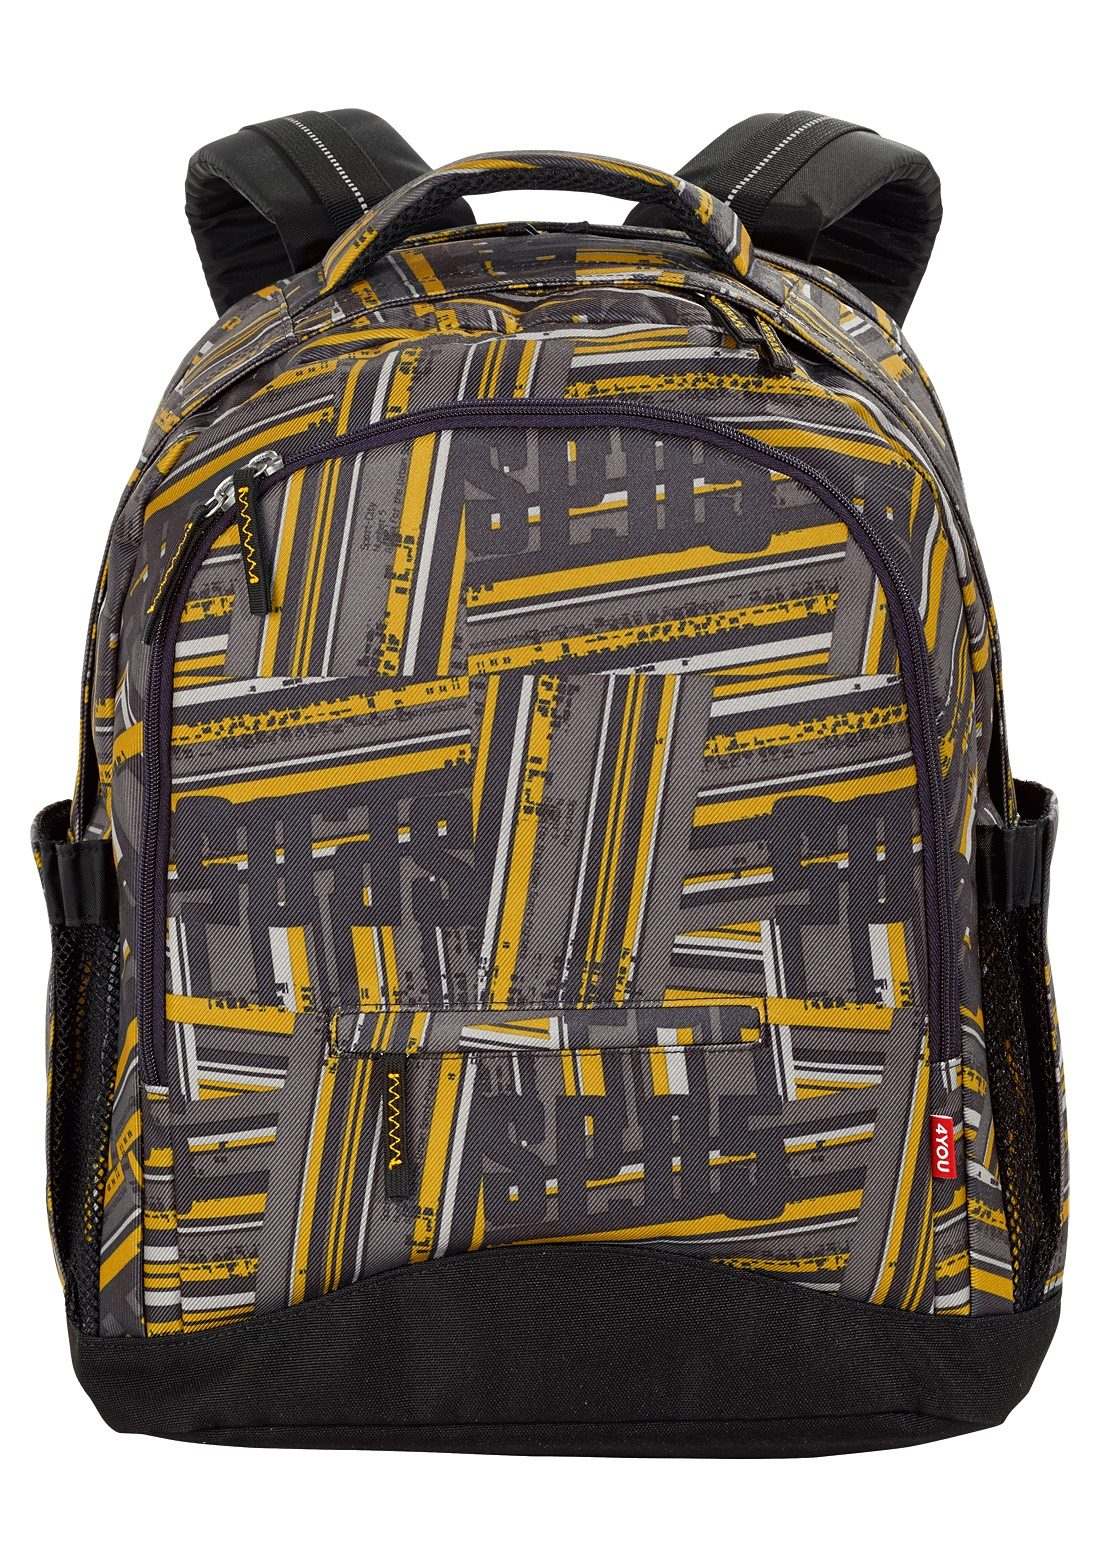 4YOU Schulrucksack mit Laptopfach, Stripes, »Compact«